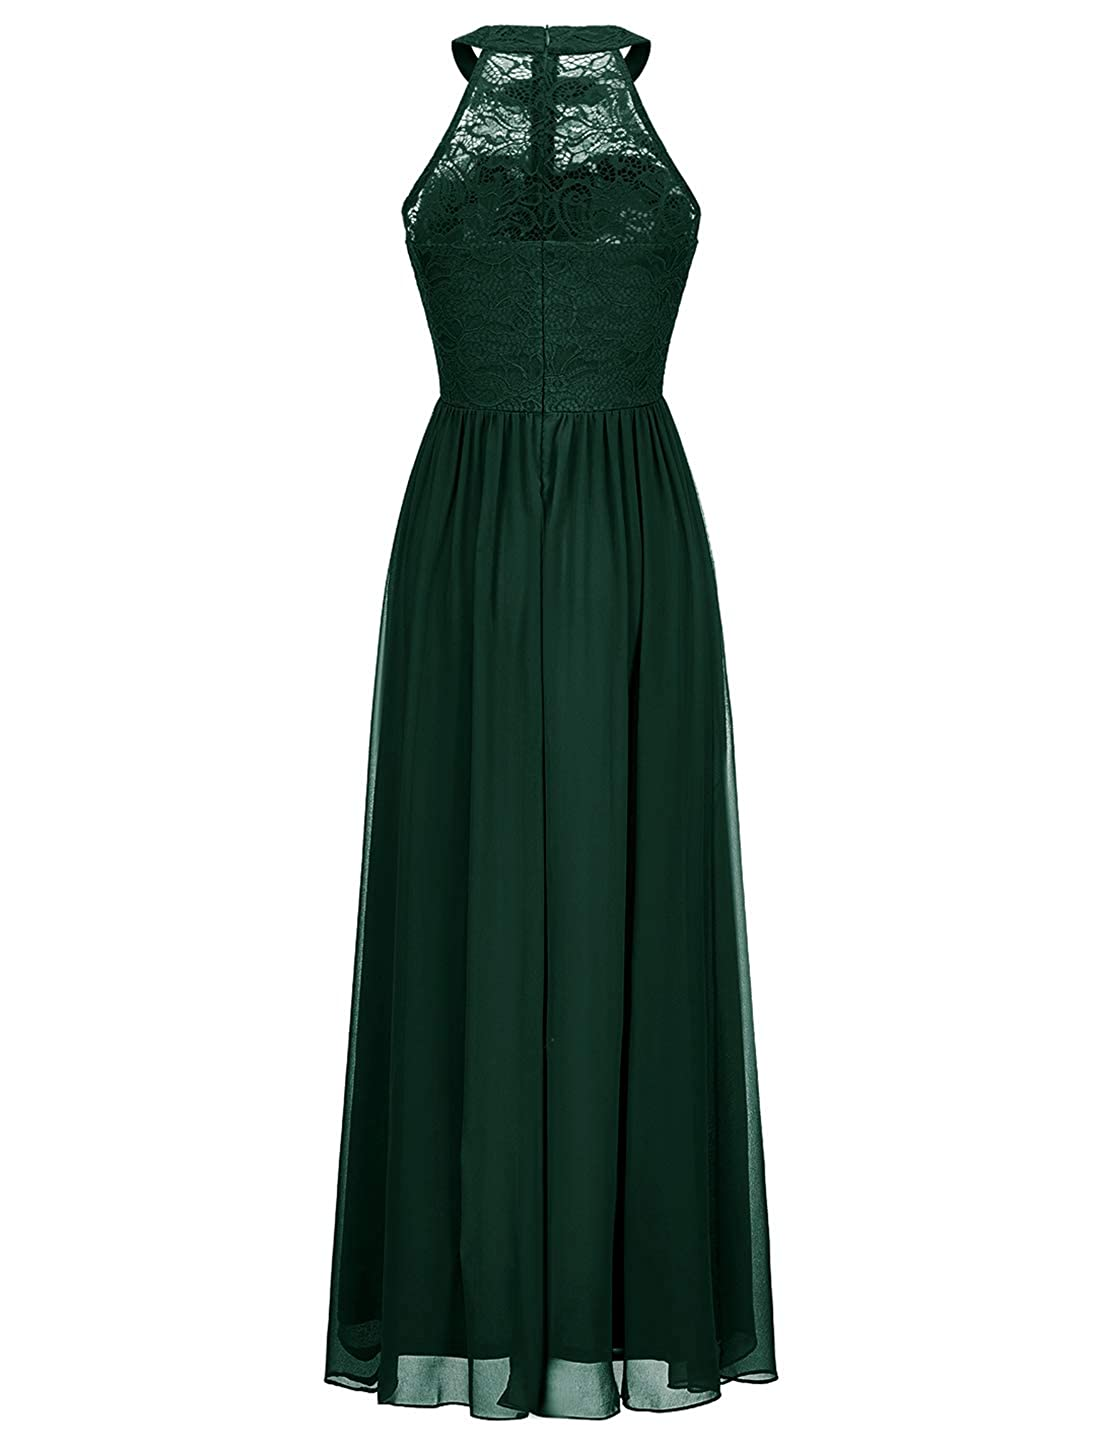 WedTrend Vintage Halter Lace Chiffon Long Bridesmaid Dress Wedding Party Evening Gowns